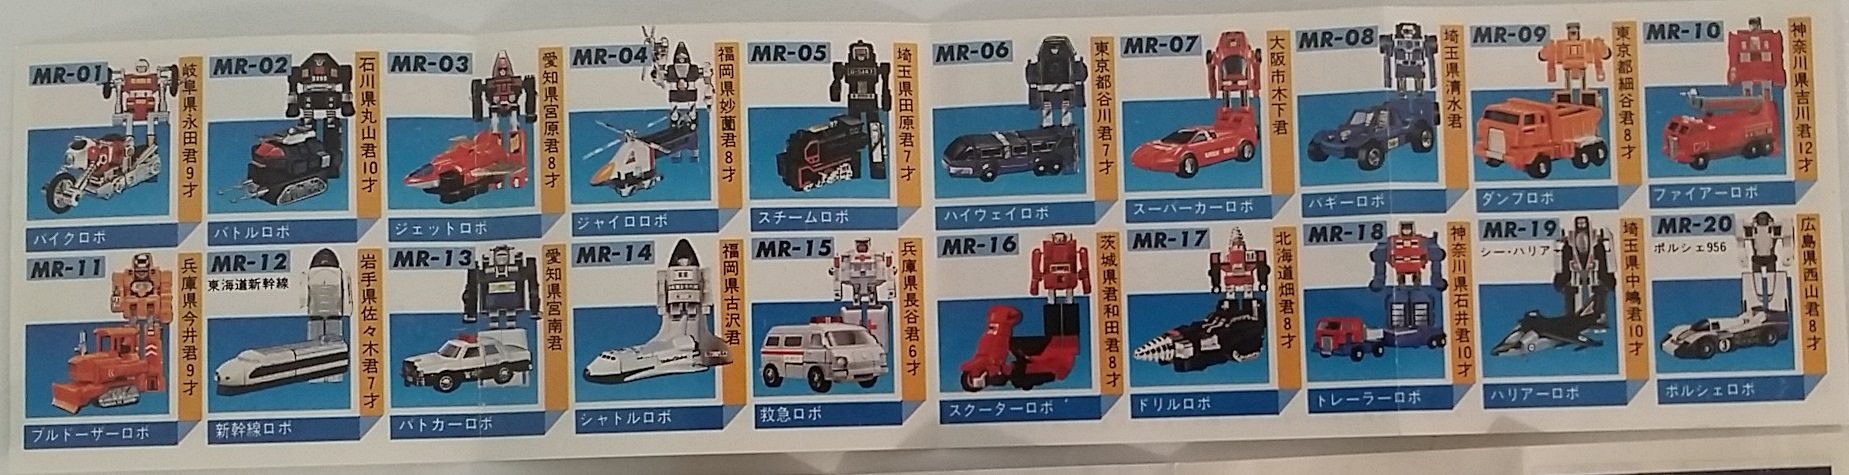 Machine Robo Series Catalog 1983 Popy/Bandai Japan Robot MR 600 lin